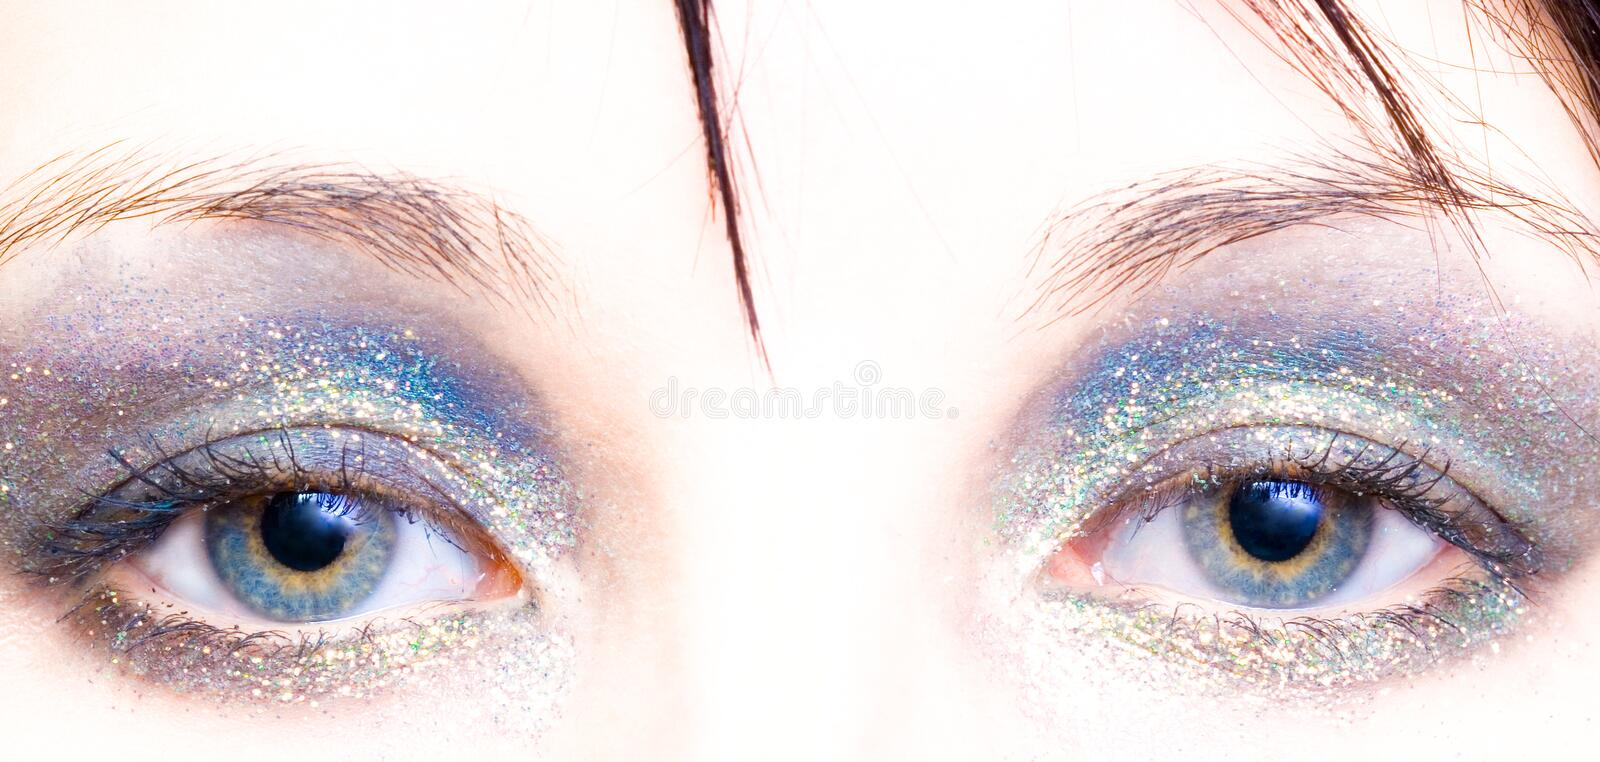 Woman with eye shadow royalty free stock photography